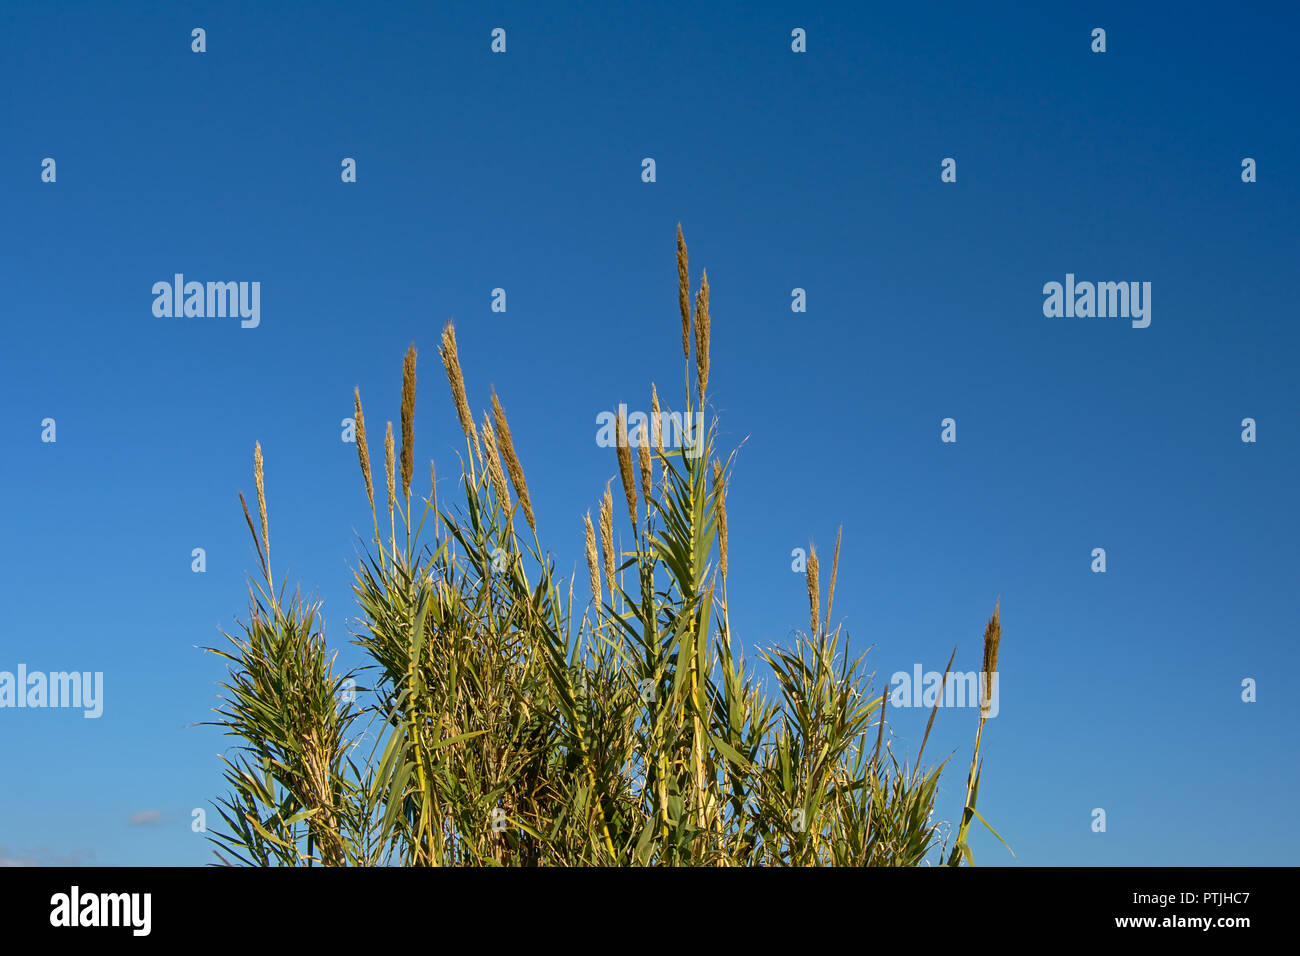 Plumes of giant reed plants on a blue sky in Guadalhorce river estuary nature reserve in Malaga - Arundo donax - Stock Image